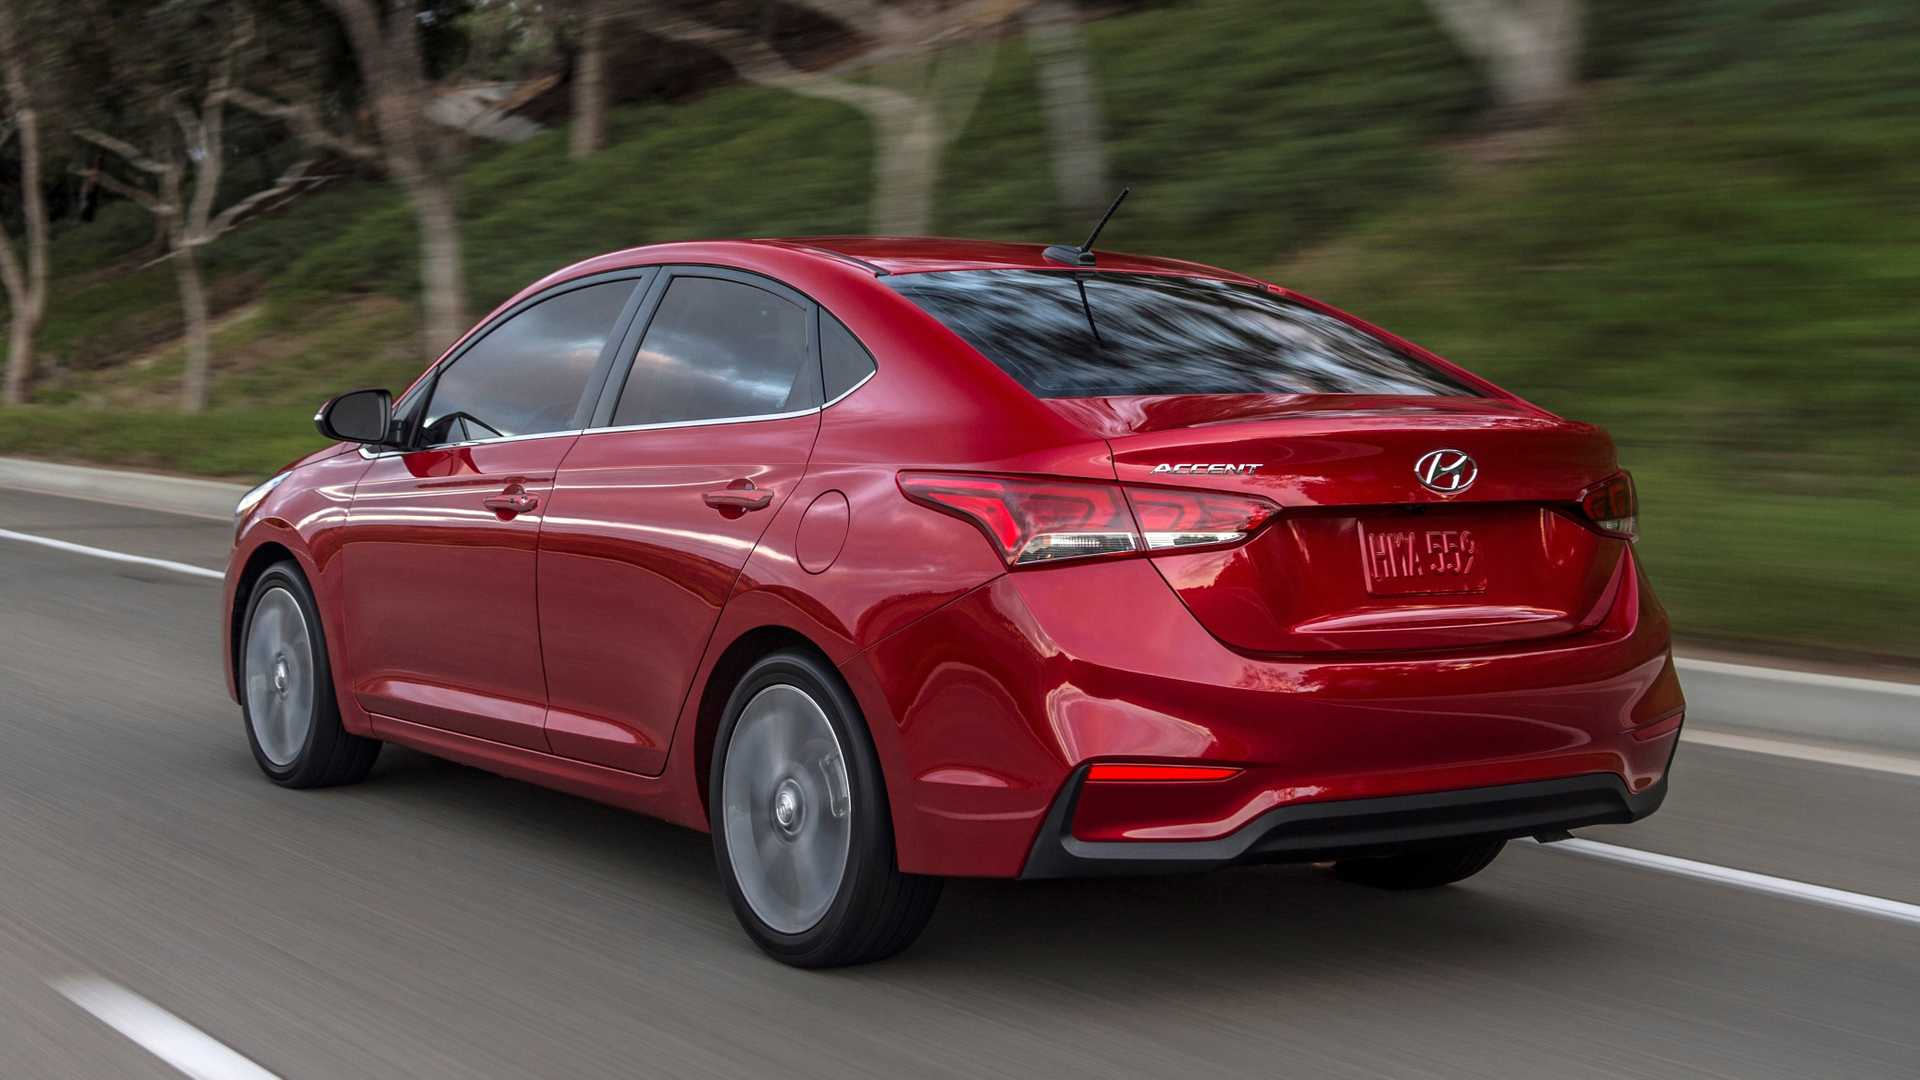 Hyundai Accent Mpg >> 2020 Hyundai Accent Gets New Engine Gearbox For Better Fuel